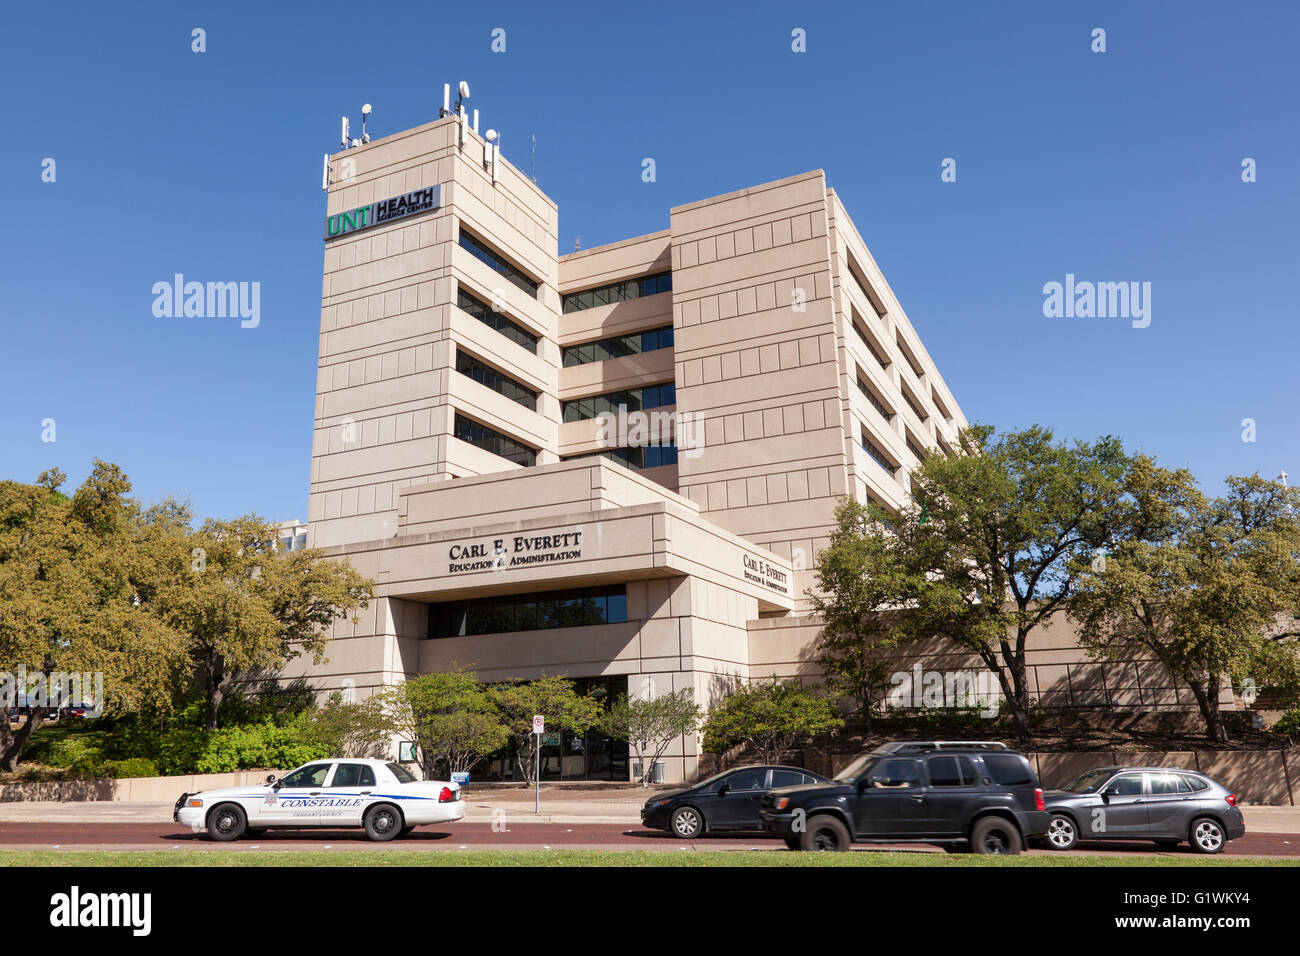 Der University of North Texas Health Science Center in der Stadt Fort Worth Stockbild